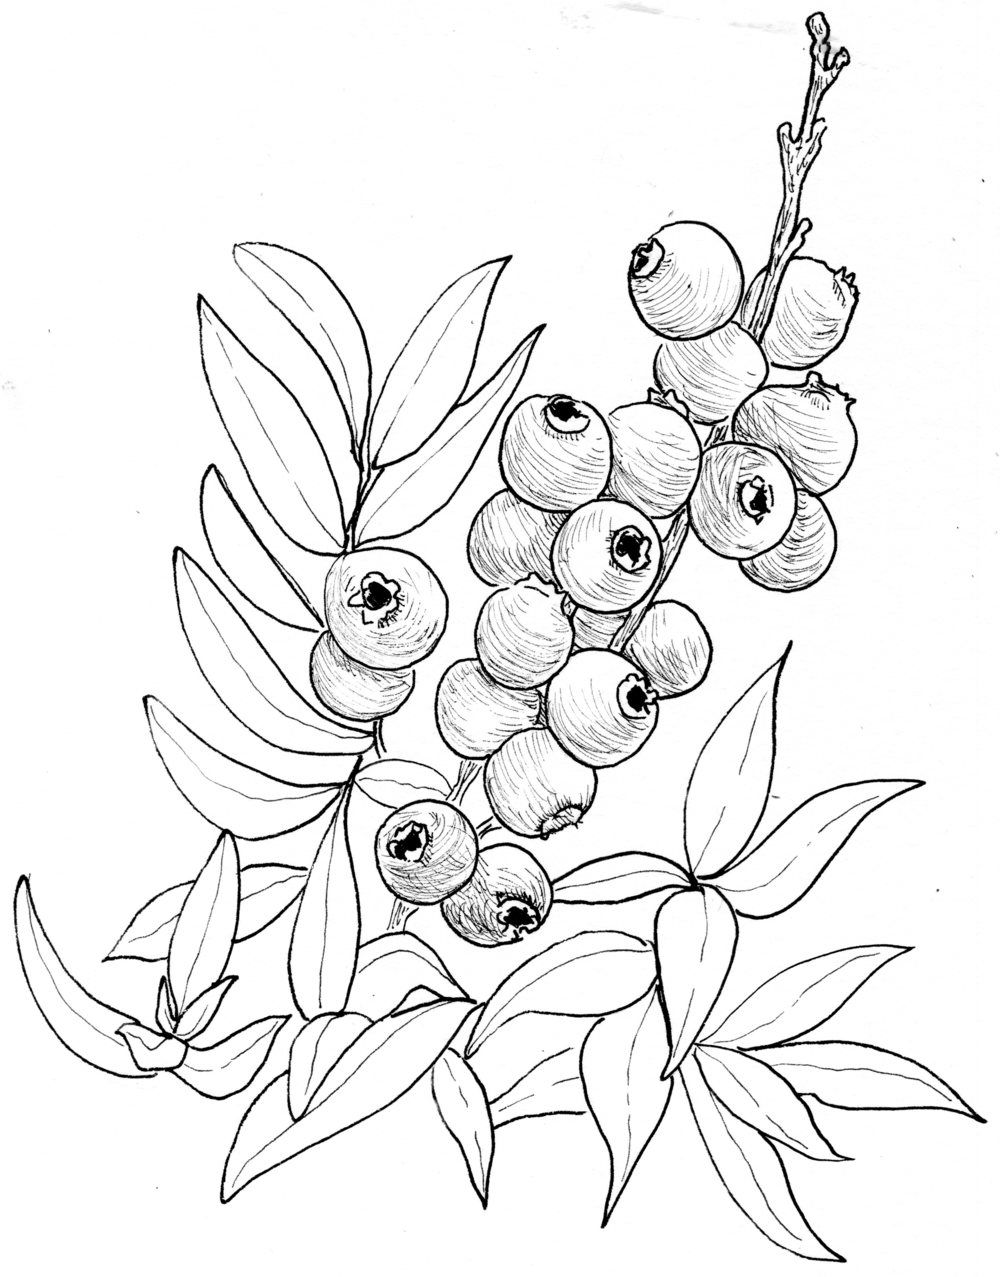 Blueberry Low Bush Fruits Drawing Plant Sketches